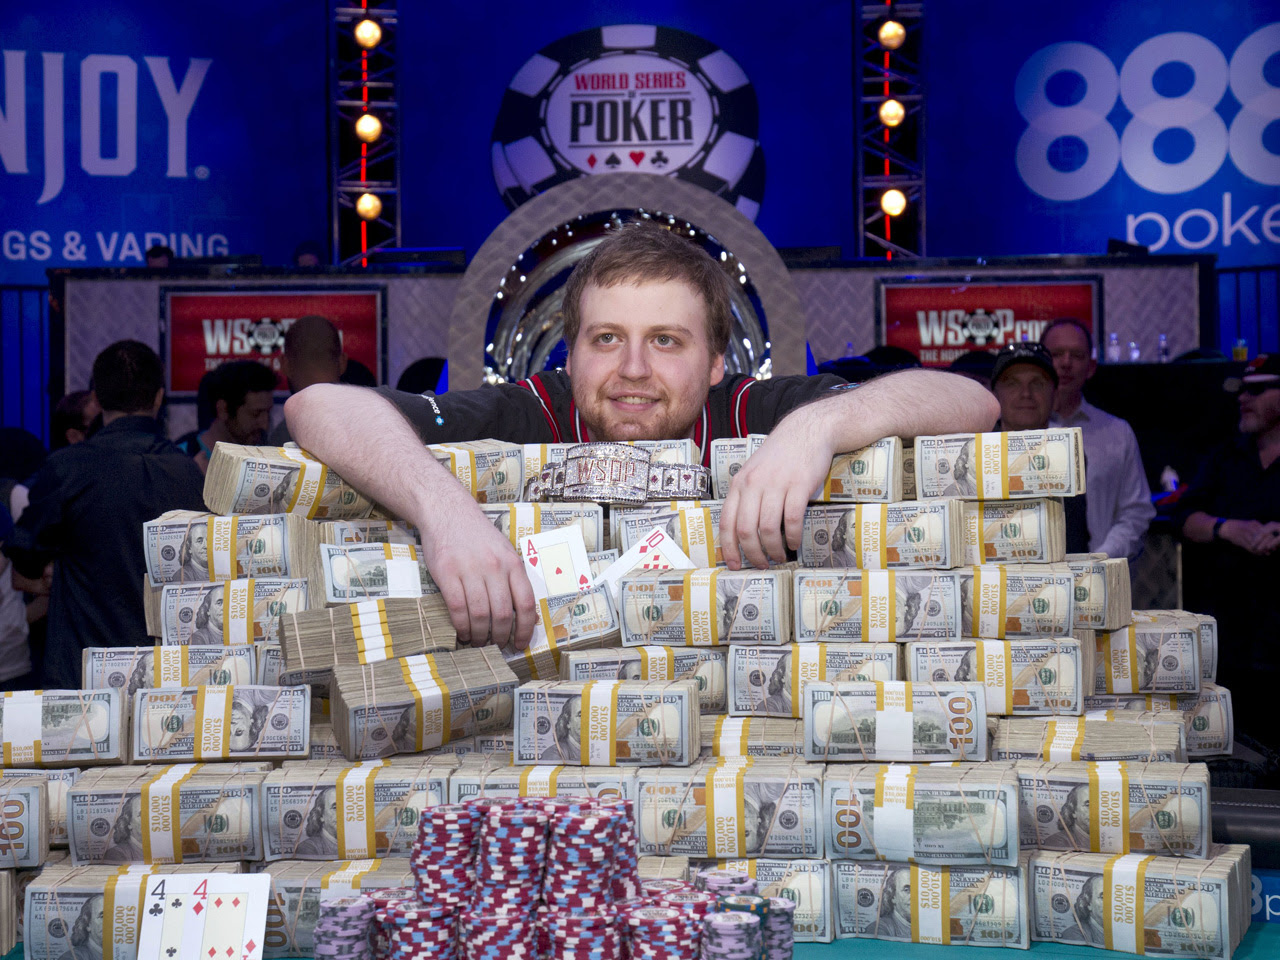 How to win at video poker in las vegas